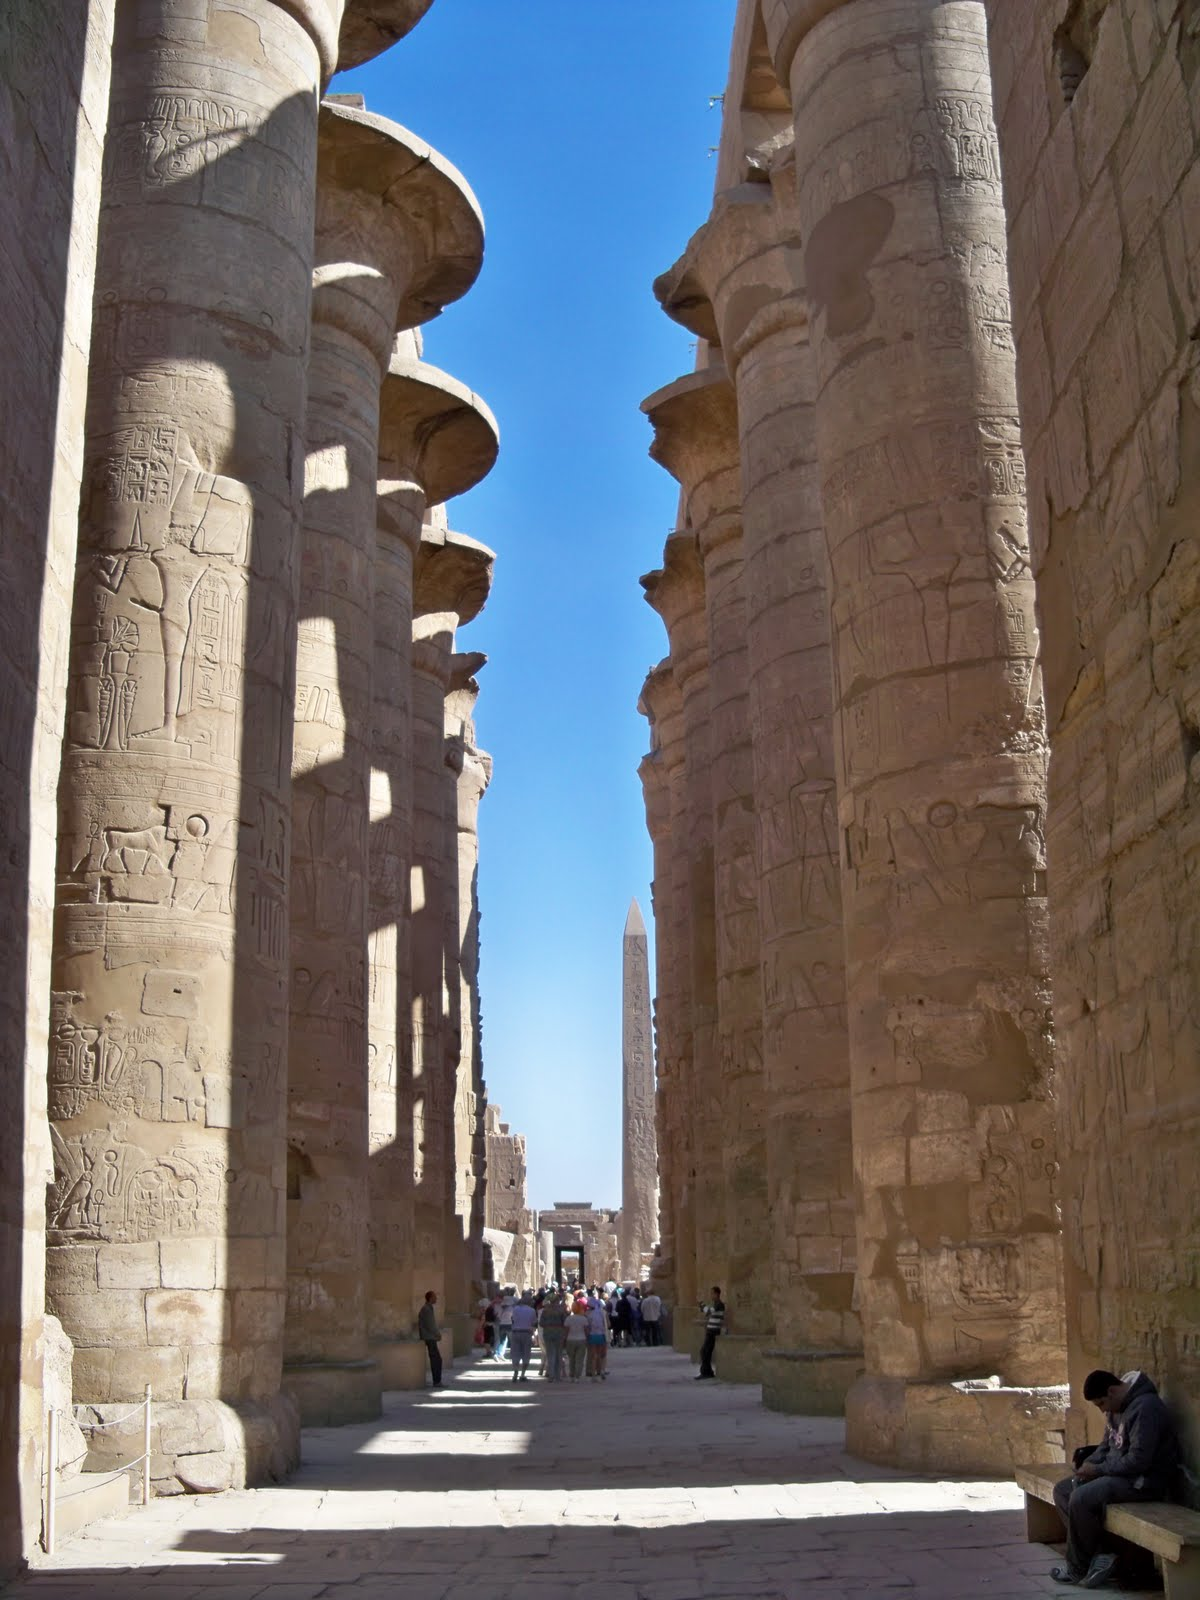 Amun Re Photographic Arts: The Hauptmann's: Valley Of The Kings To Karnak Day 8